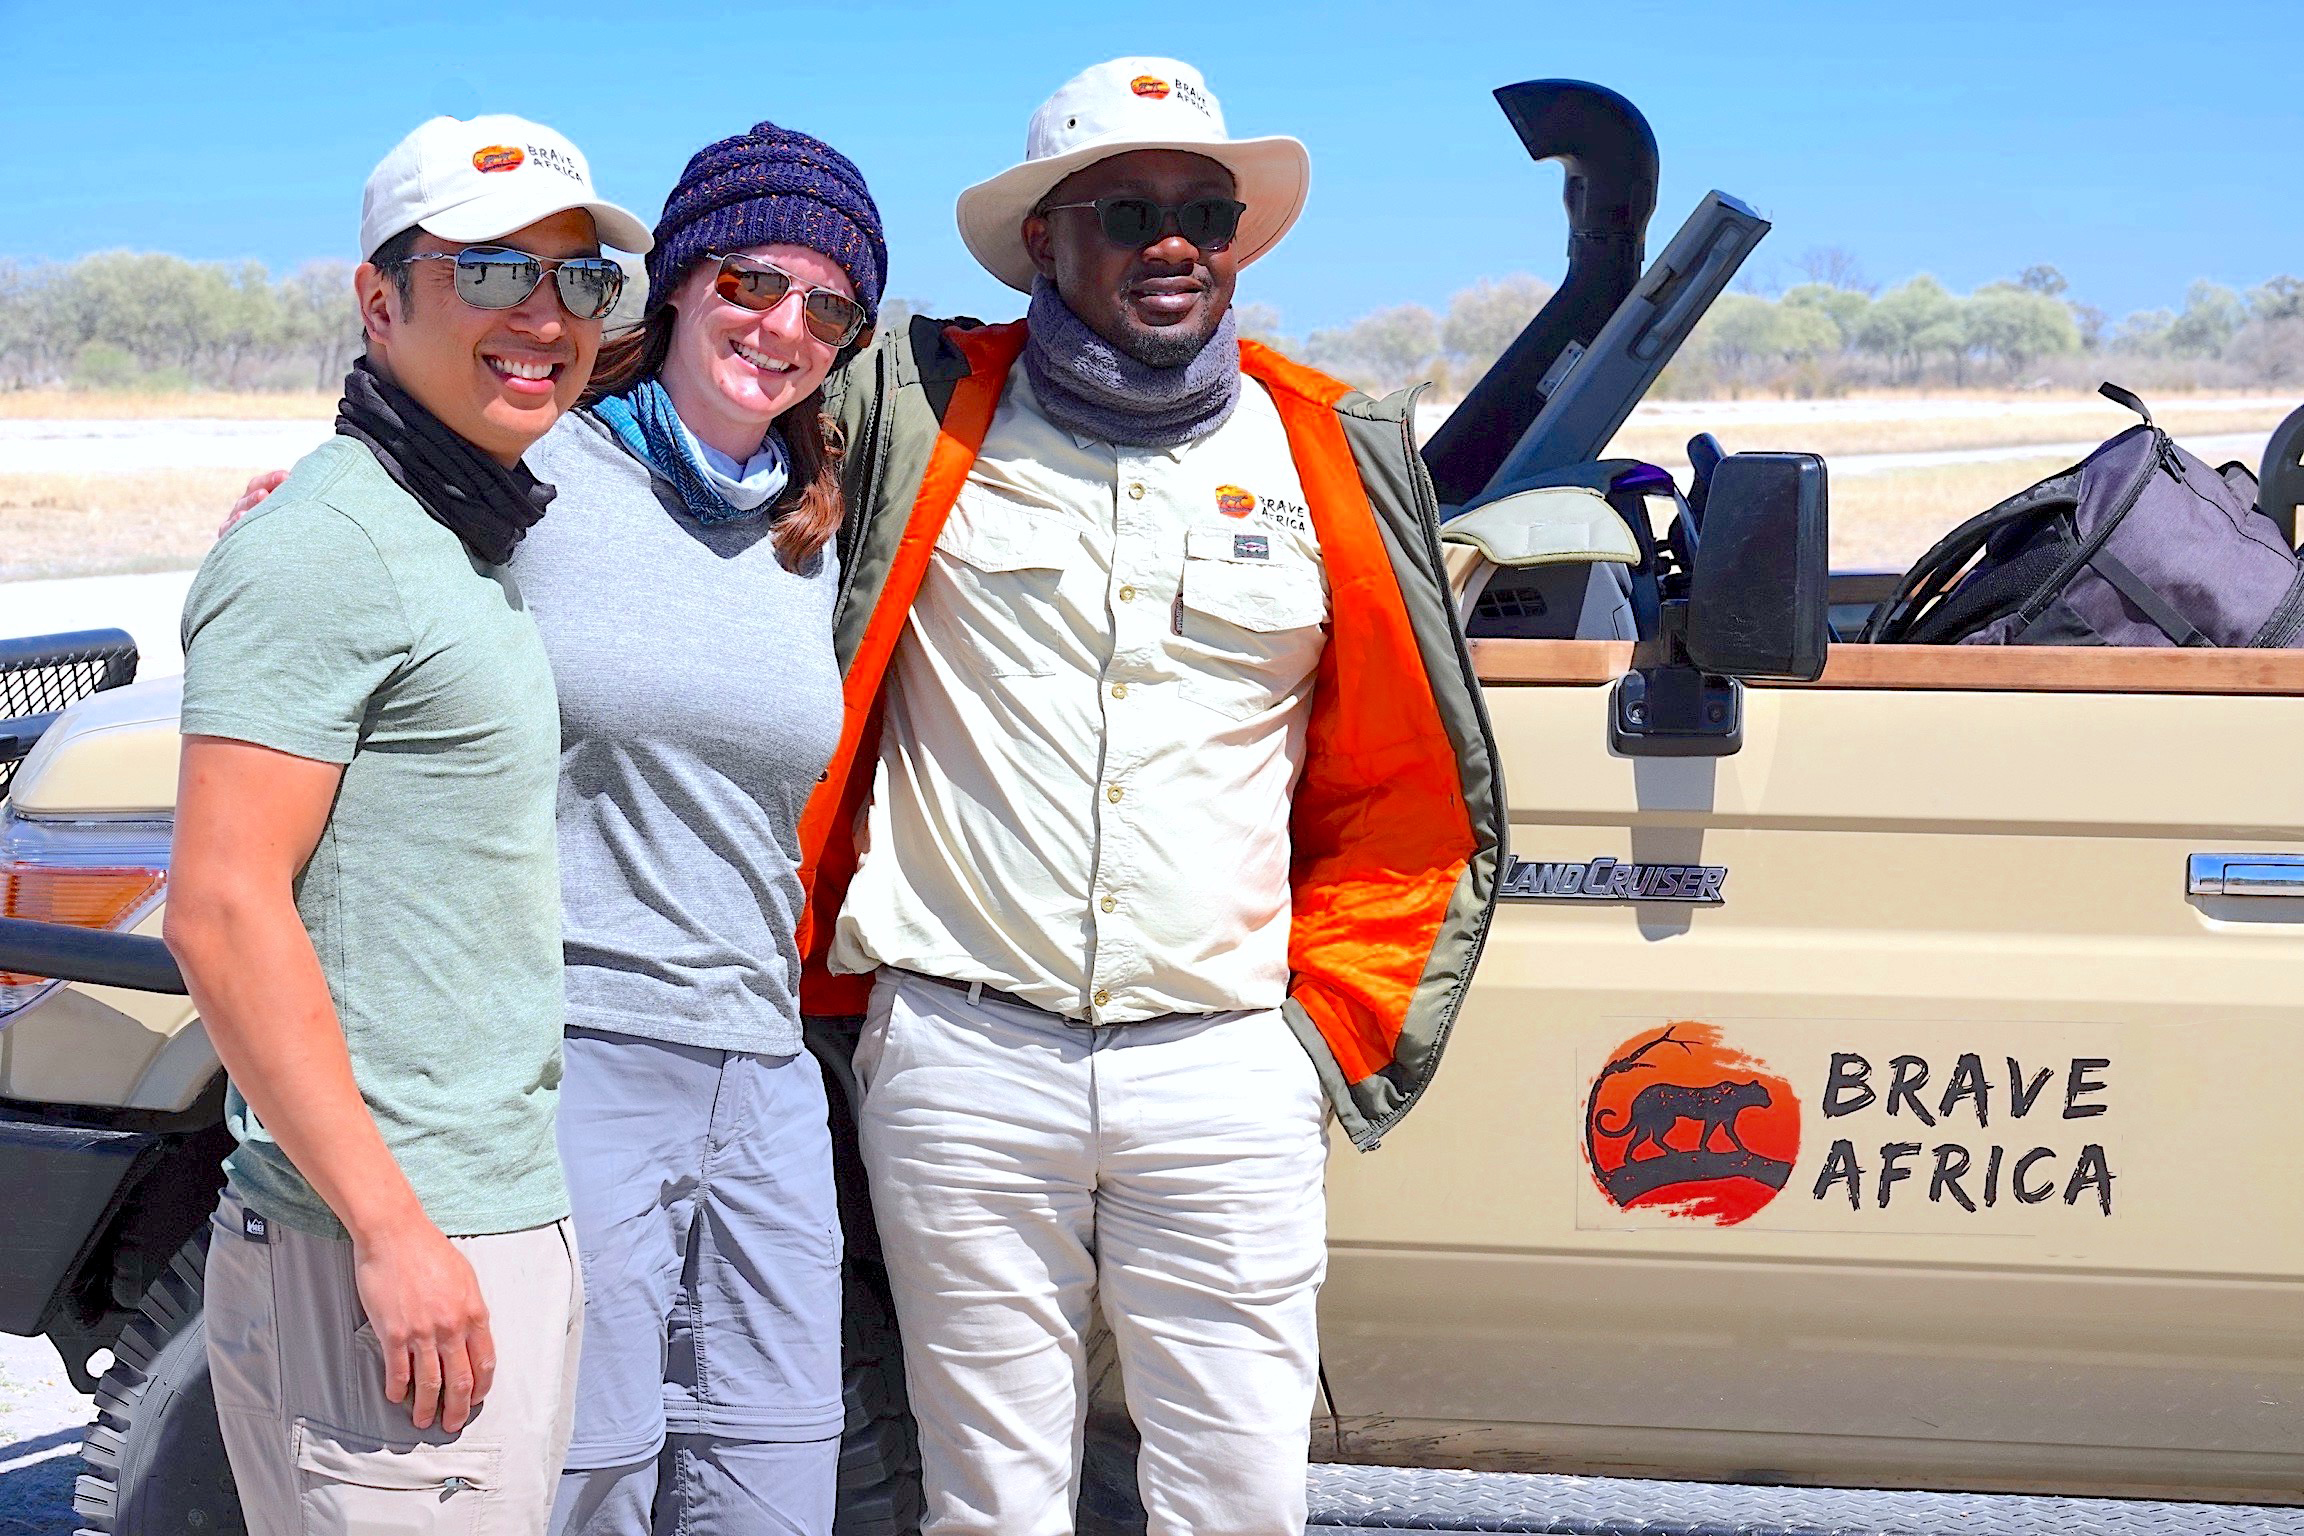 Brave Africa's 3 Owners: Patrick, Kelly, and Wina